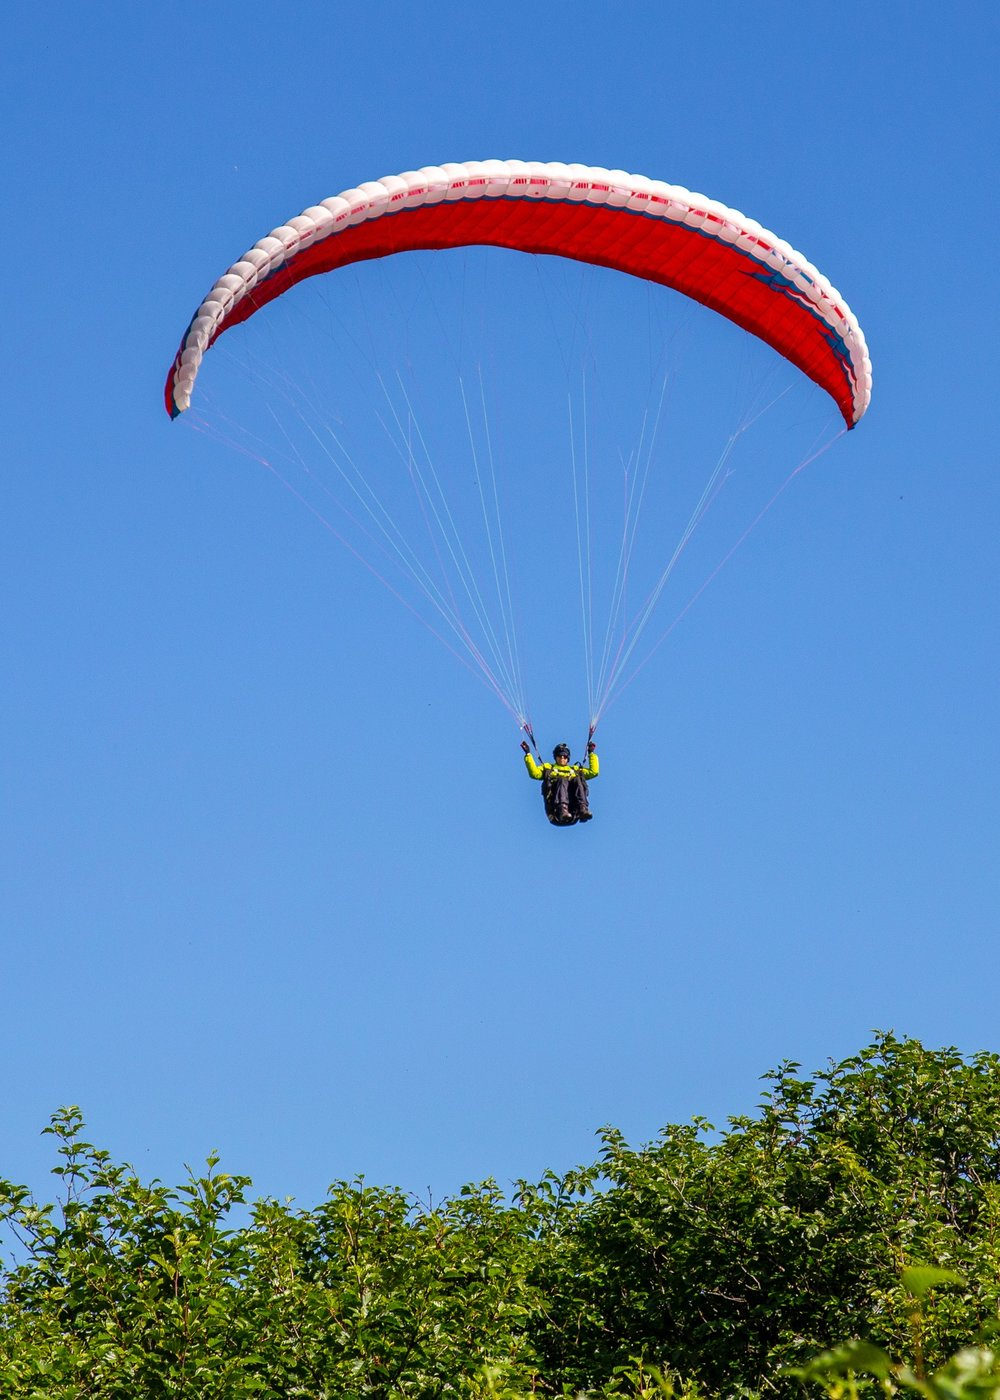 The paragliders were a bit crazy, zipping overhead of all the people on the trails.